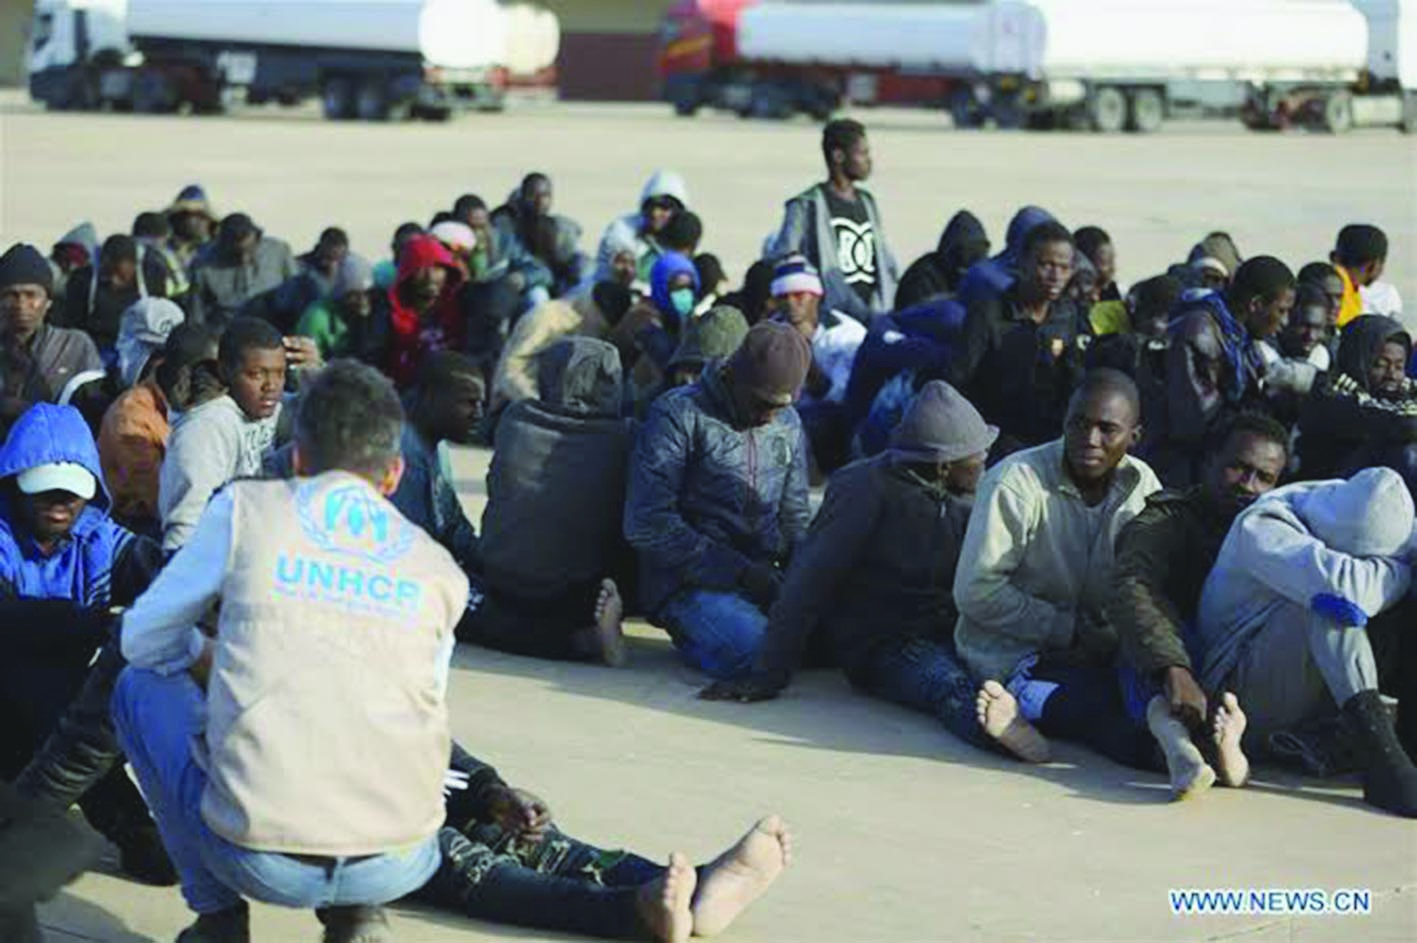 More than 1,000 minor illegal immigrants held in Libyan detention centres